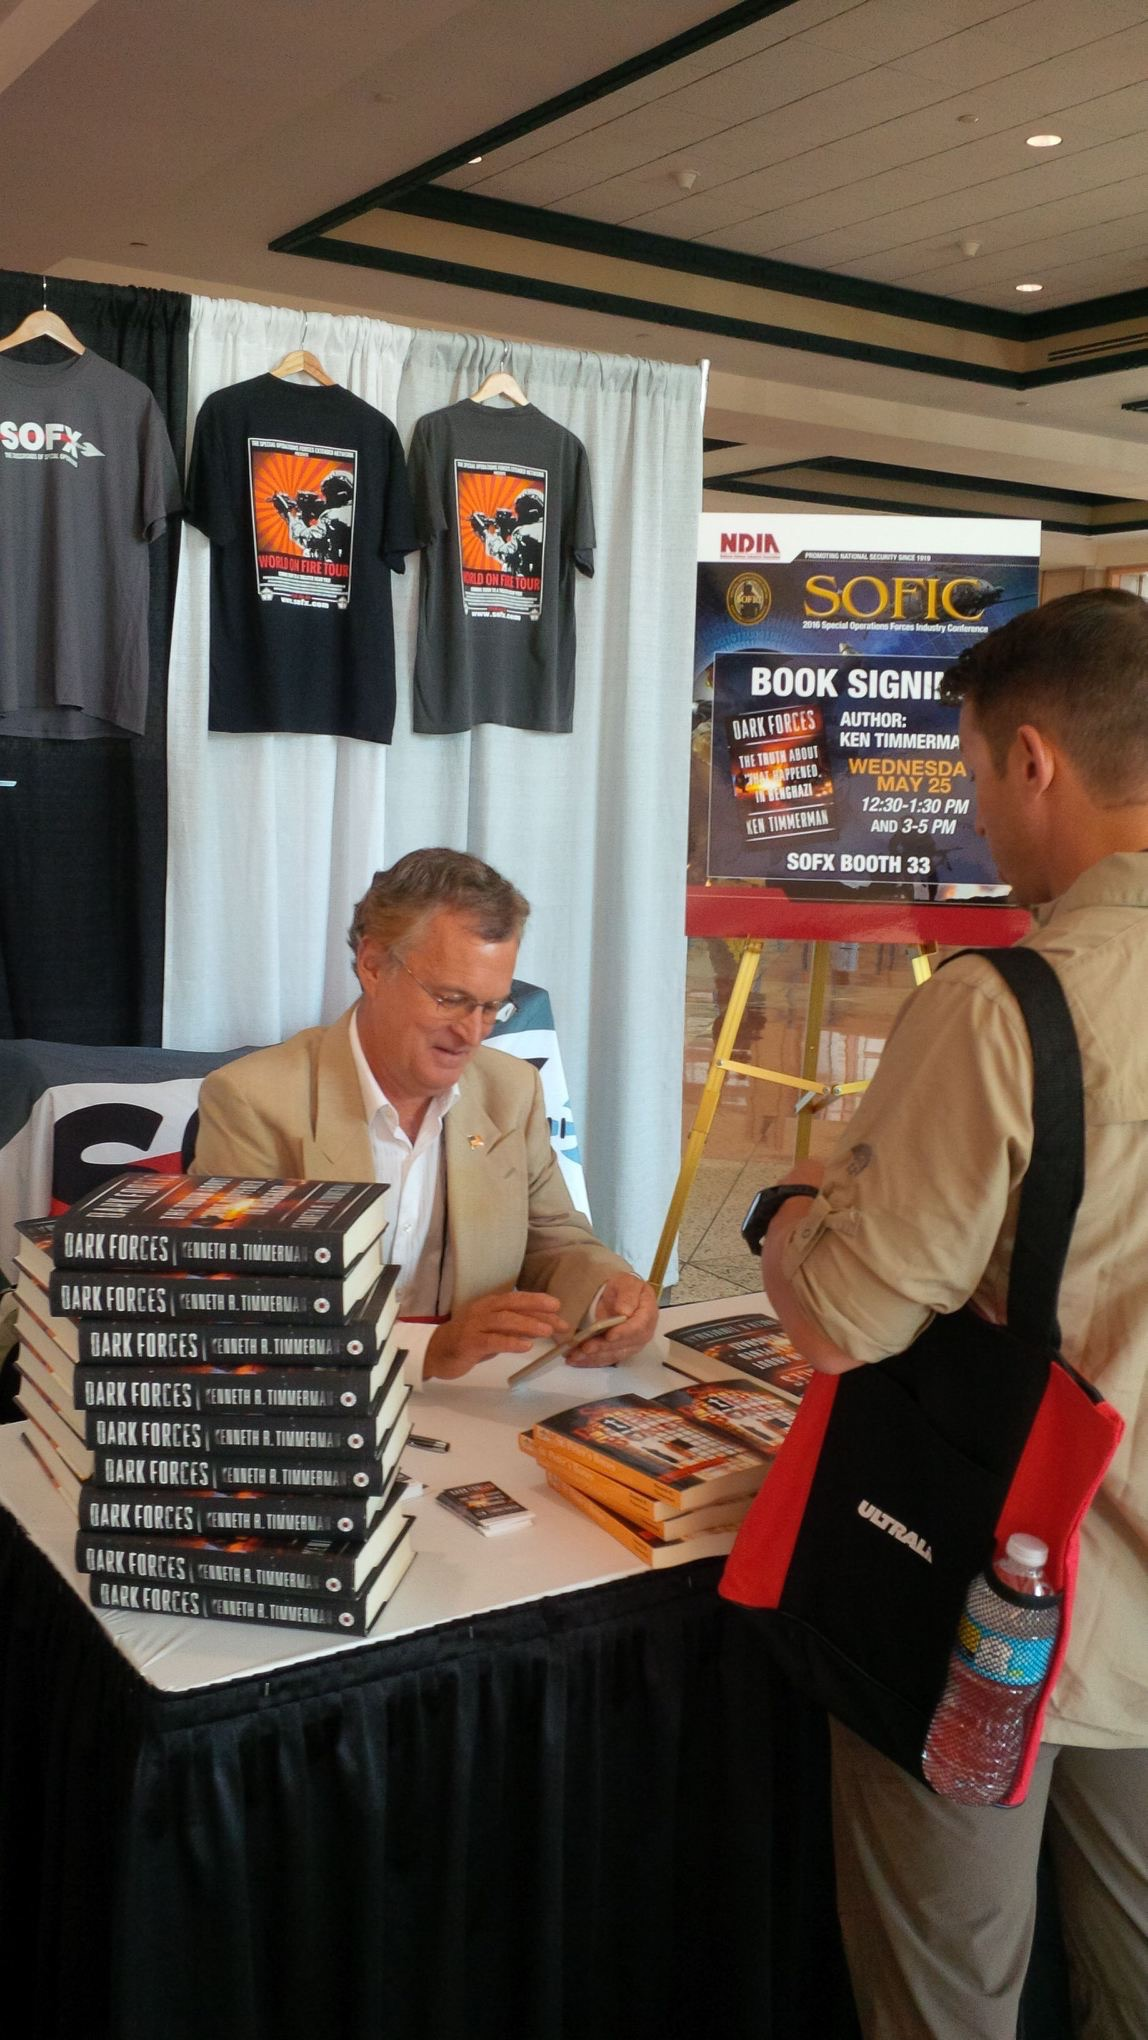 SOFIC                           book-signing in Tampa, FL